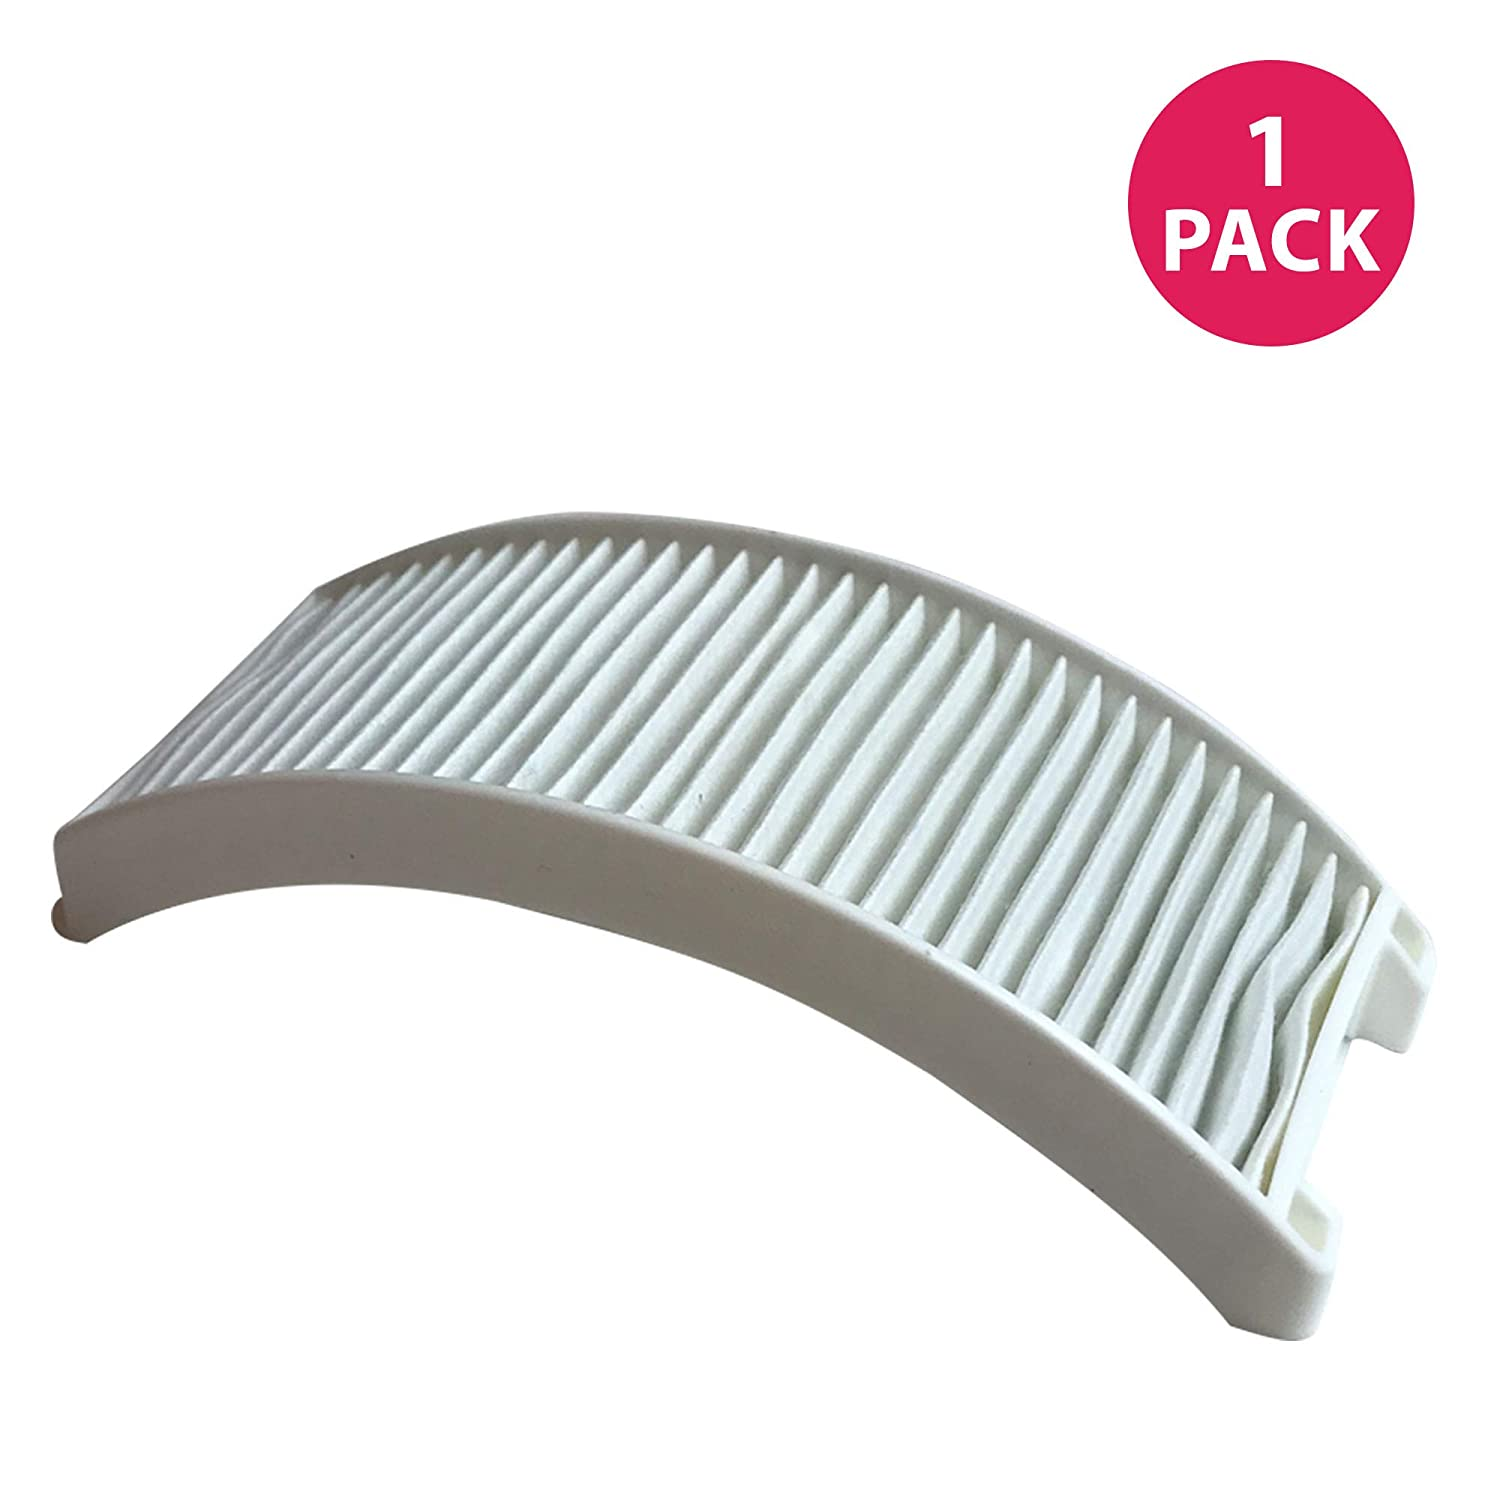 Crucial Vacuum Replacement Air Filter - Compatible with Bissell Style 12 - HEPA Style Filter Parts For PowerForce Bagless Models 6594, 6594F - Pair with Part #203-1402 and 203-8037 - Bulk (1 Pack)